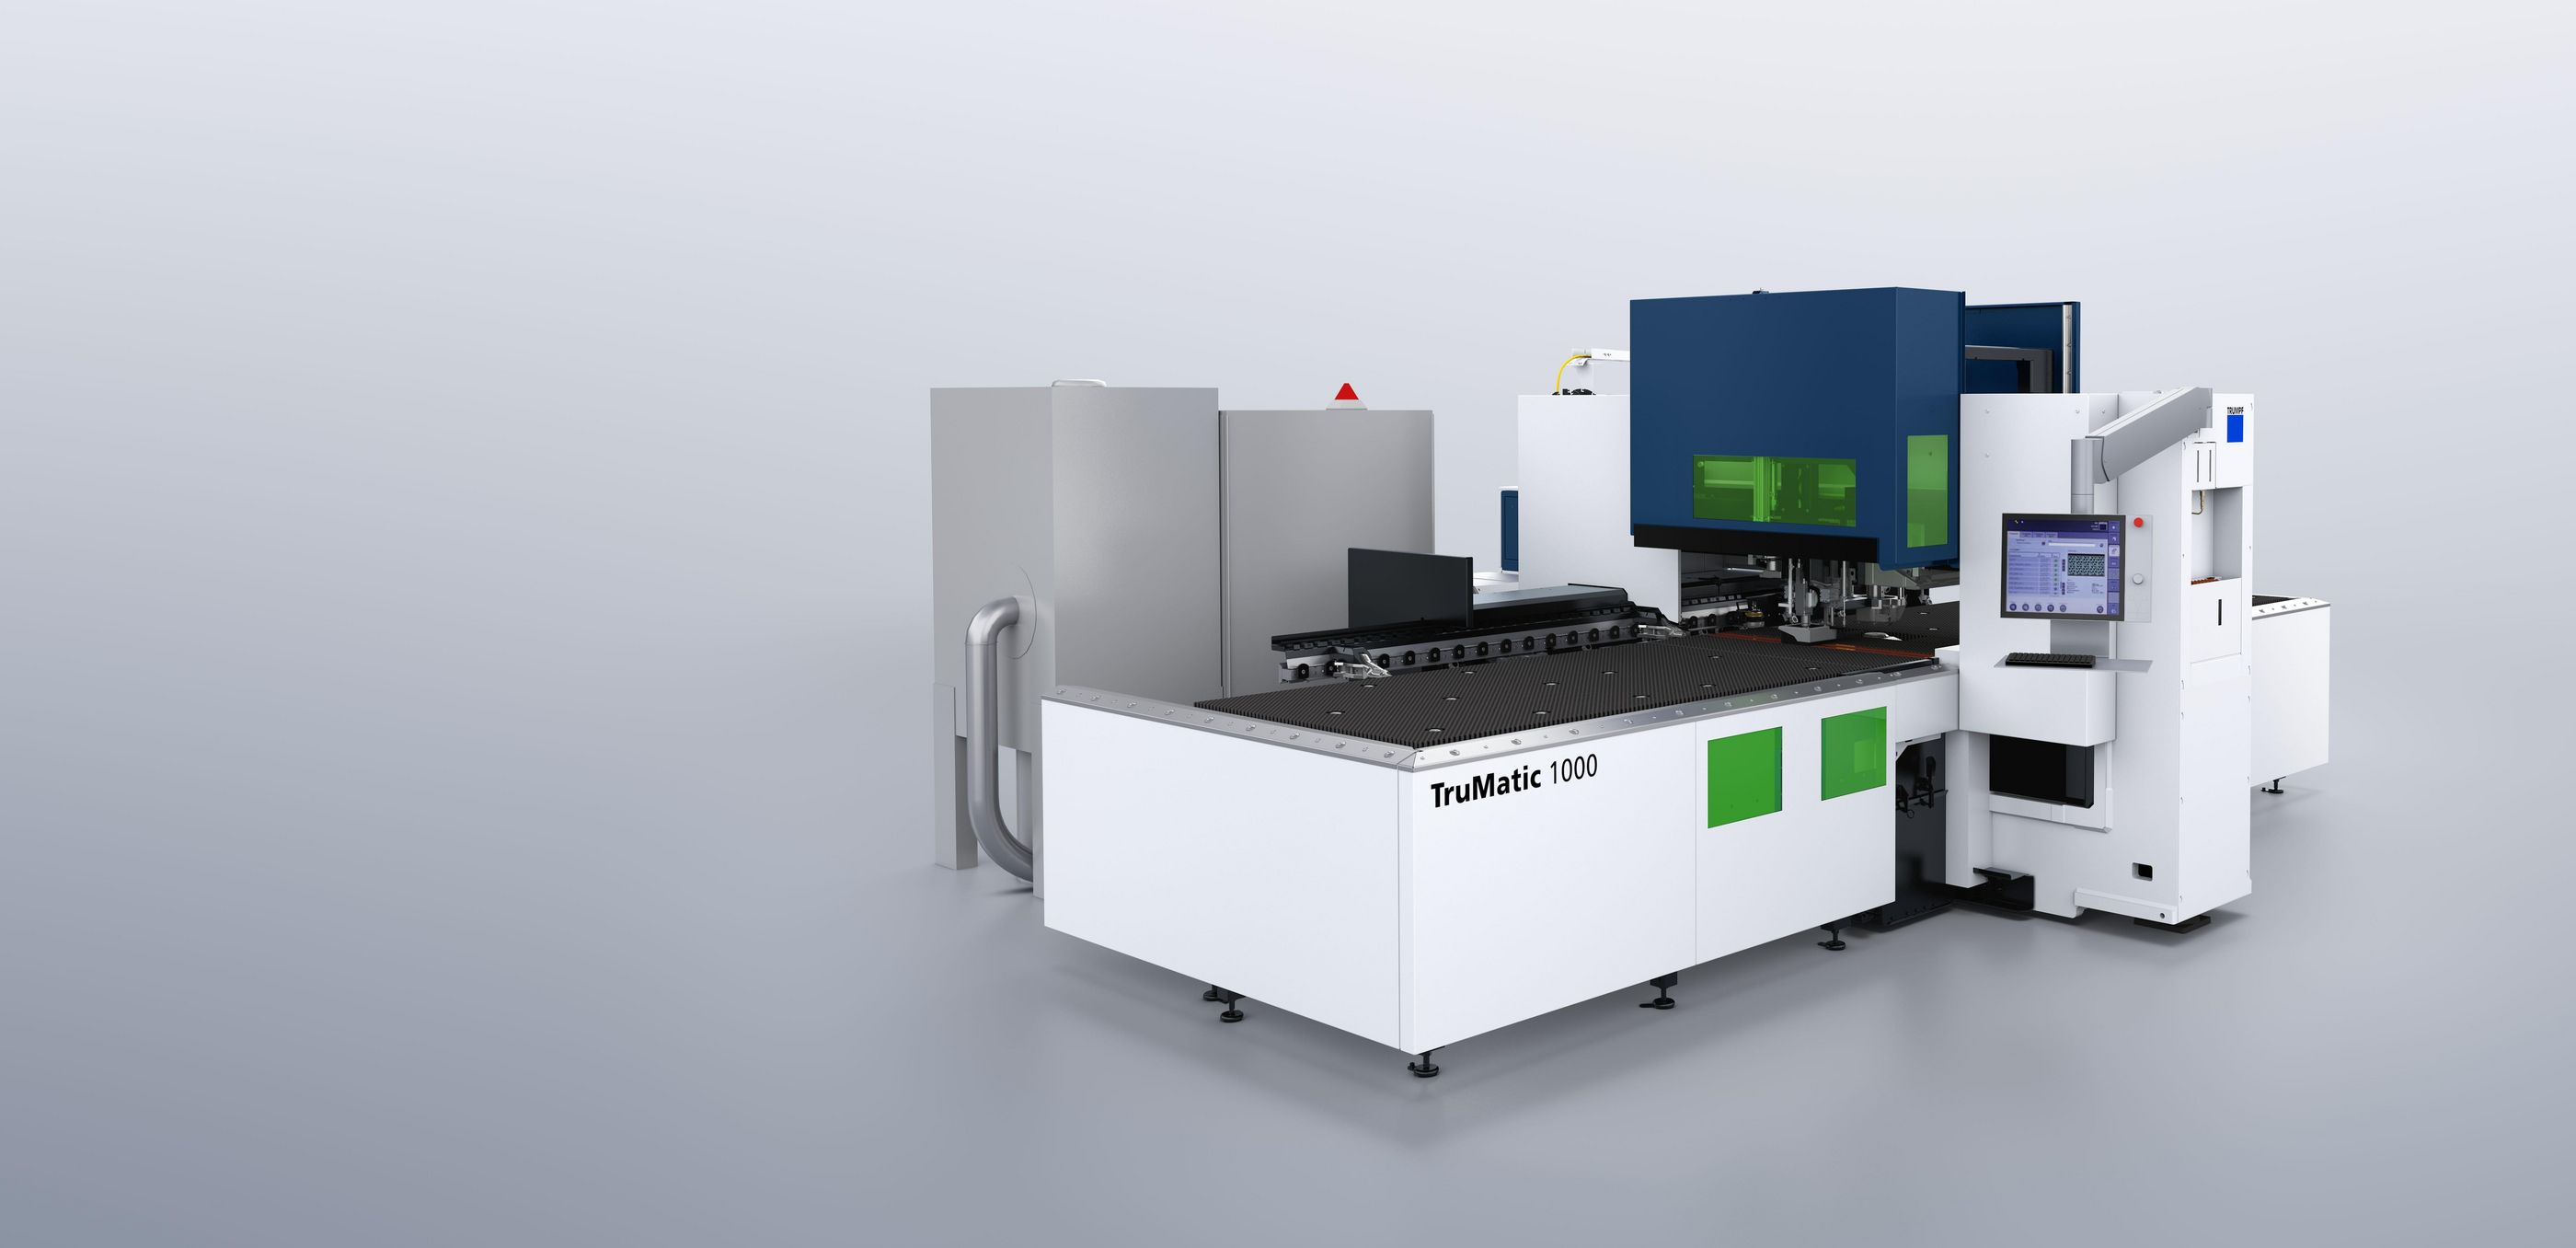 TruMatic 1000 fiber, punching head and cutting head